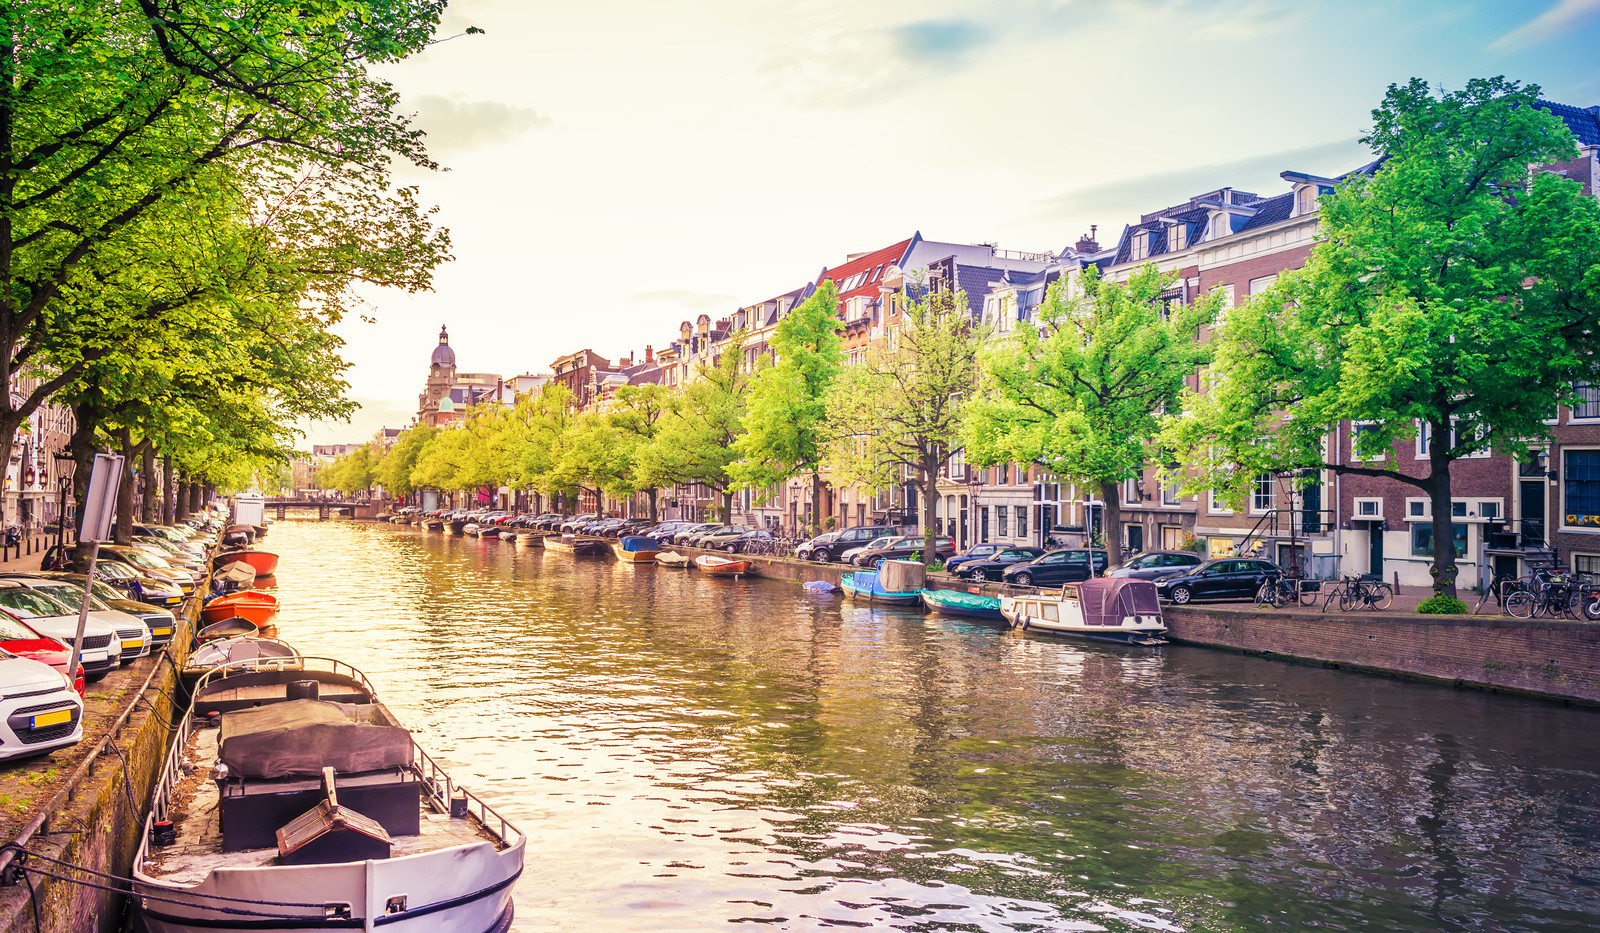 Canva - Channel in Amsterdam at sunset.j